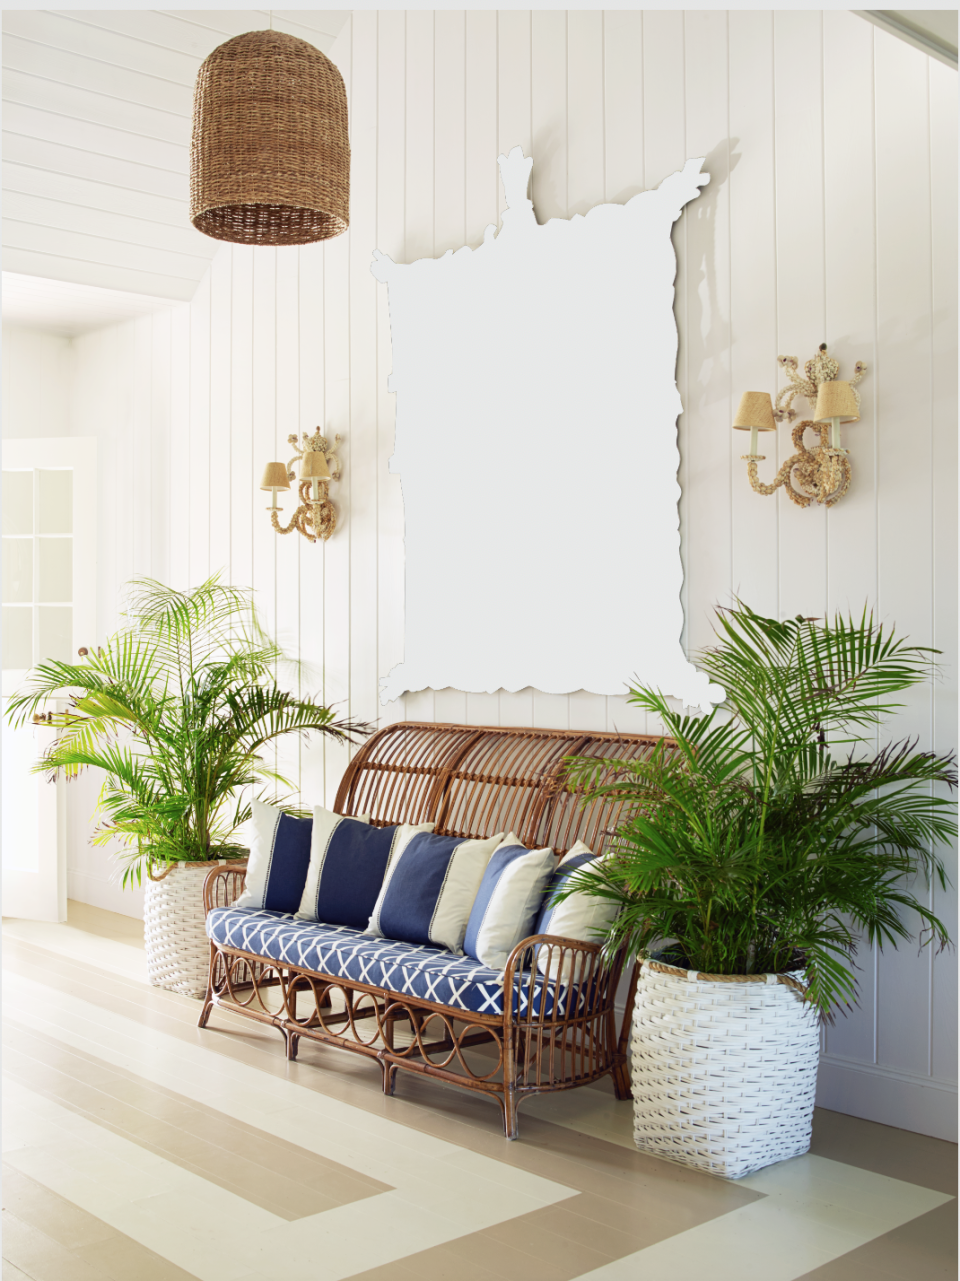 """<p>Rattan's comeback is in full swing, and it's hard to resist its vintage and '70s throwback charm. However aesthetes such as <a href=""""https://amandalindroth.com/"""" rel=""""nofollow noopener"""" target=""""_blank"""" data-ylk=""""slk:Amanda Lindroth"""" class=""""link rapid-noclick-resp"""">Amanda Lindroth</a>, <a href=""""https://ateliervime.com/en/"""" rel=""""nofollow noopener"""" target=""""_blank"""" data-ylk=""""slk:Atelier Vime"""" class=""""link rapid-noclick-resp"""">Atelier Vime</a> and <a href=""""https://www.soane.co.uk/"""" rel=""""nofollow noopener"""" target=""""_blank"""" data-ylk=""""slk:Soane"""" class=""""link rapid-noclick-resp"""">Soane</a> as well as bigger stores like <a href=""""https://www.serenaandlily.com/"""" rel=""""nofollow noopener"""" target=""""_blank"""" data-ylk=""""slk:Serena & Lily"""" class=""""link rapid-noclick-resp"""">Serena & Lily</a> have created new furniture designs that feel fresh and elevated, giving rattan a broader audience than ever before. Rattan and <a href=""""https://www.veranda.com/home-decorators/a32210954/guide-to-wicker/"""" rel=""""nofollow noopener"""" target=""""_blank"""" data-ylk=""""slk:decorating with wicker"""" class=""""link rapid-noclick-resp"""">decorating with wicker</a> or <a href=""""https://www.veranda.com/shopping/g34691759/caned-furniture/"""" rel=""""nofollow noopener"""" target=""""_blank"""" data-ylk=""""slk:cane"""" class=""""link rapid-noclick-resp"""">cane</a> brings a chic blend of grandma's house and tropical glamour to the home. Plus, it's a sturdy, natural material that innately highlights its handcrafted nature. We've gathered a few of our favorite rattan pieces on the market, from chic side tables to grand beds to help inspire your next natural fiber find. </p>"""